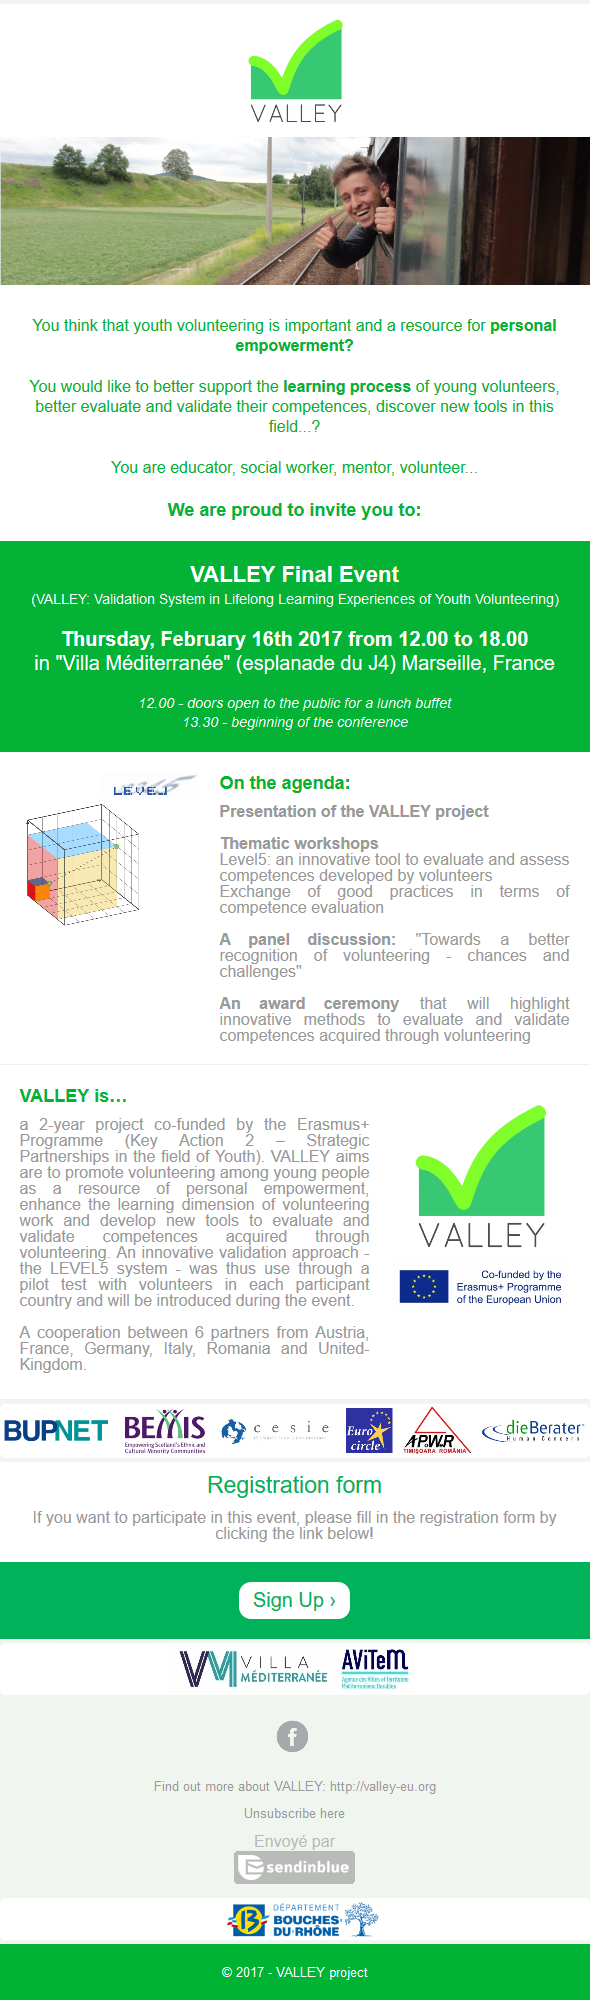 #112 - 'Invitation_ VALLEY Final Event - 16_02_17 - Marseille, France' - mpva_r_ca_d_sendibm2_com_a9lkcwsqc7nf_html